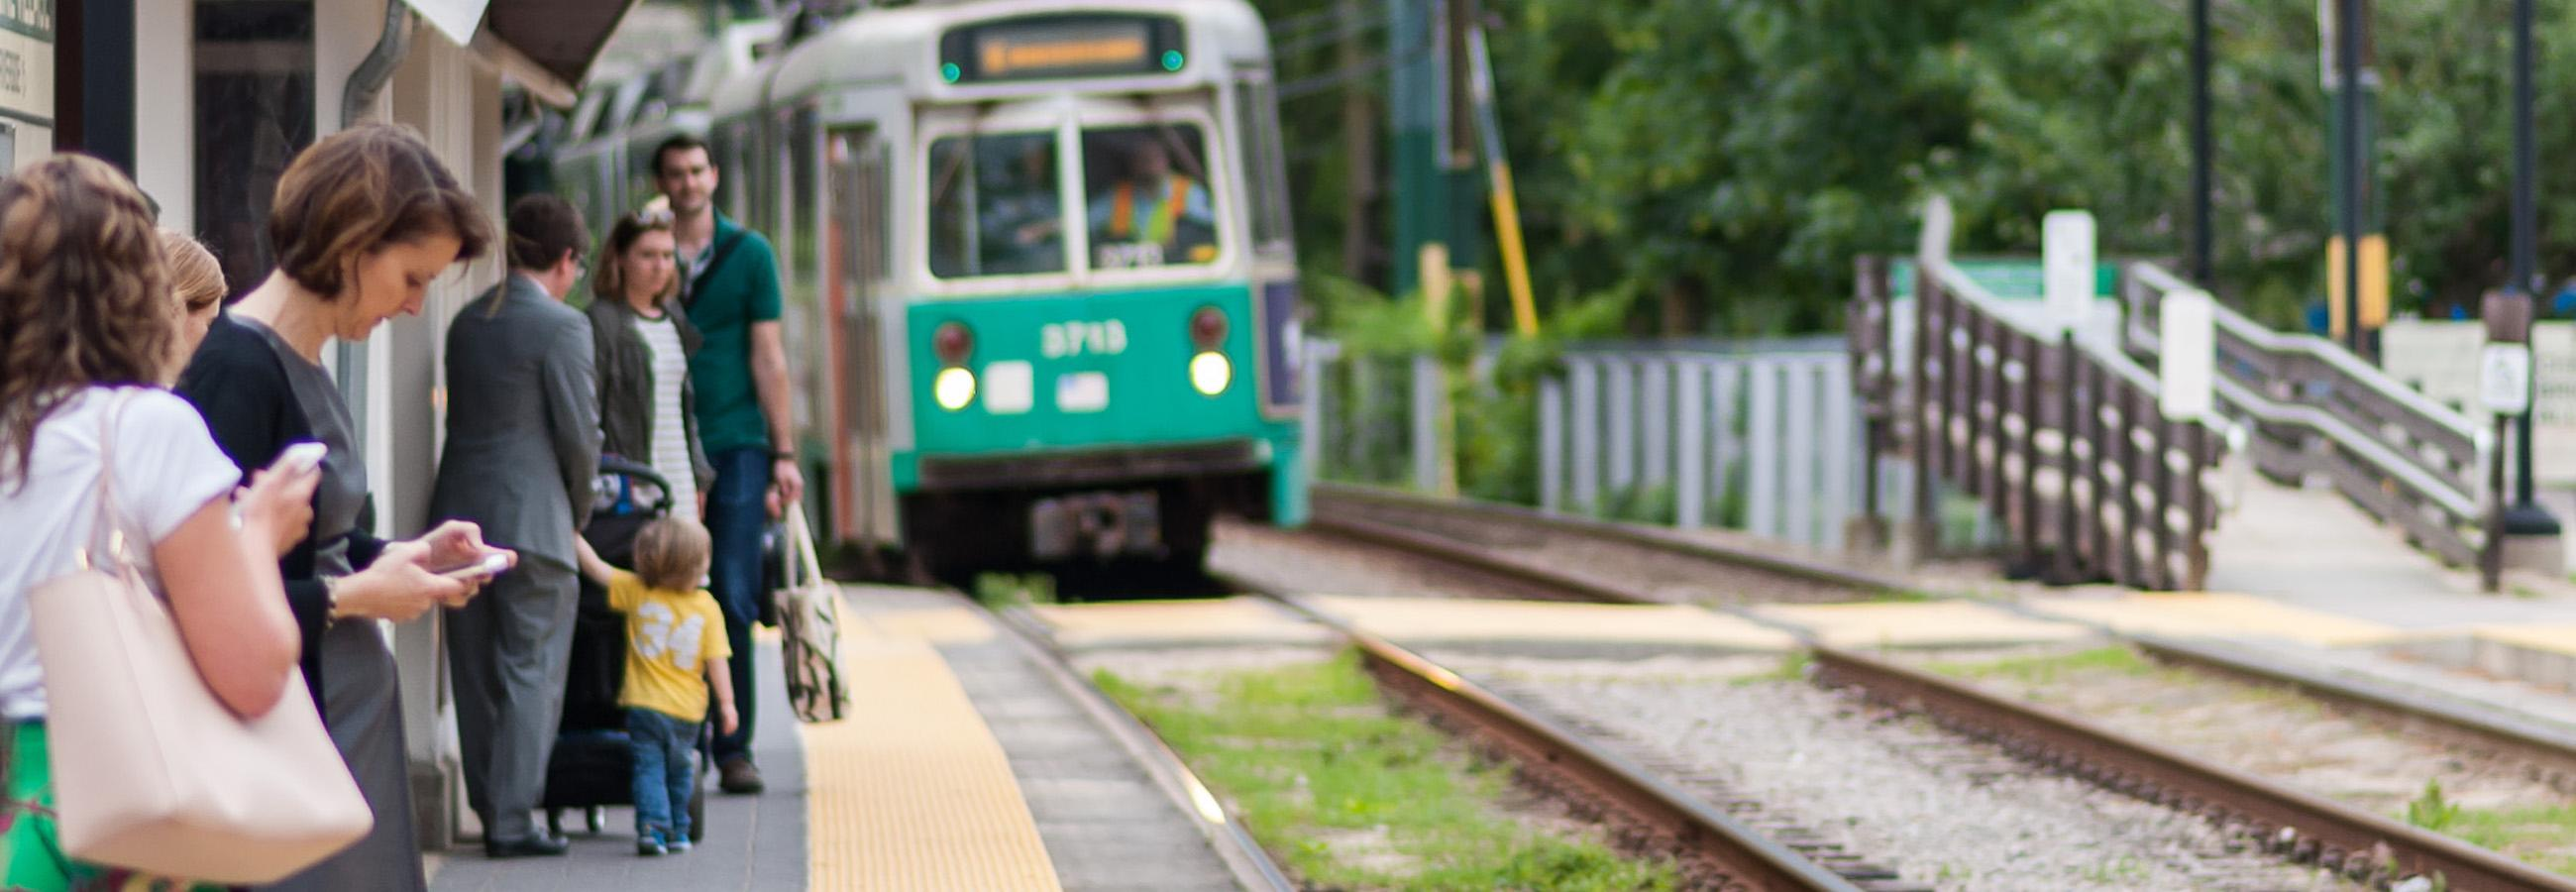 Green Line customers wait at stop